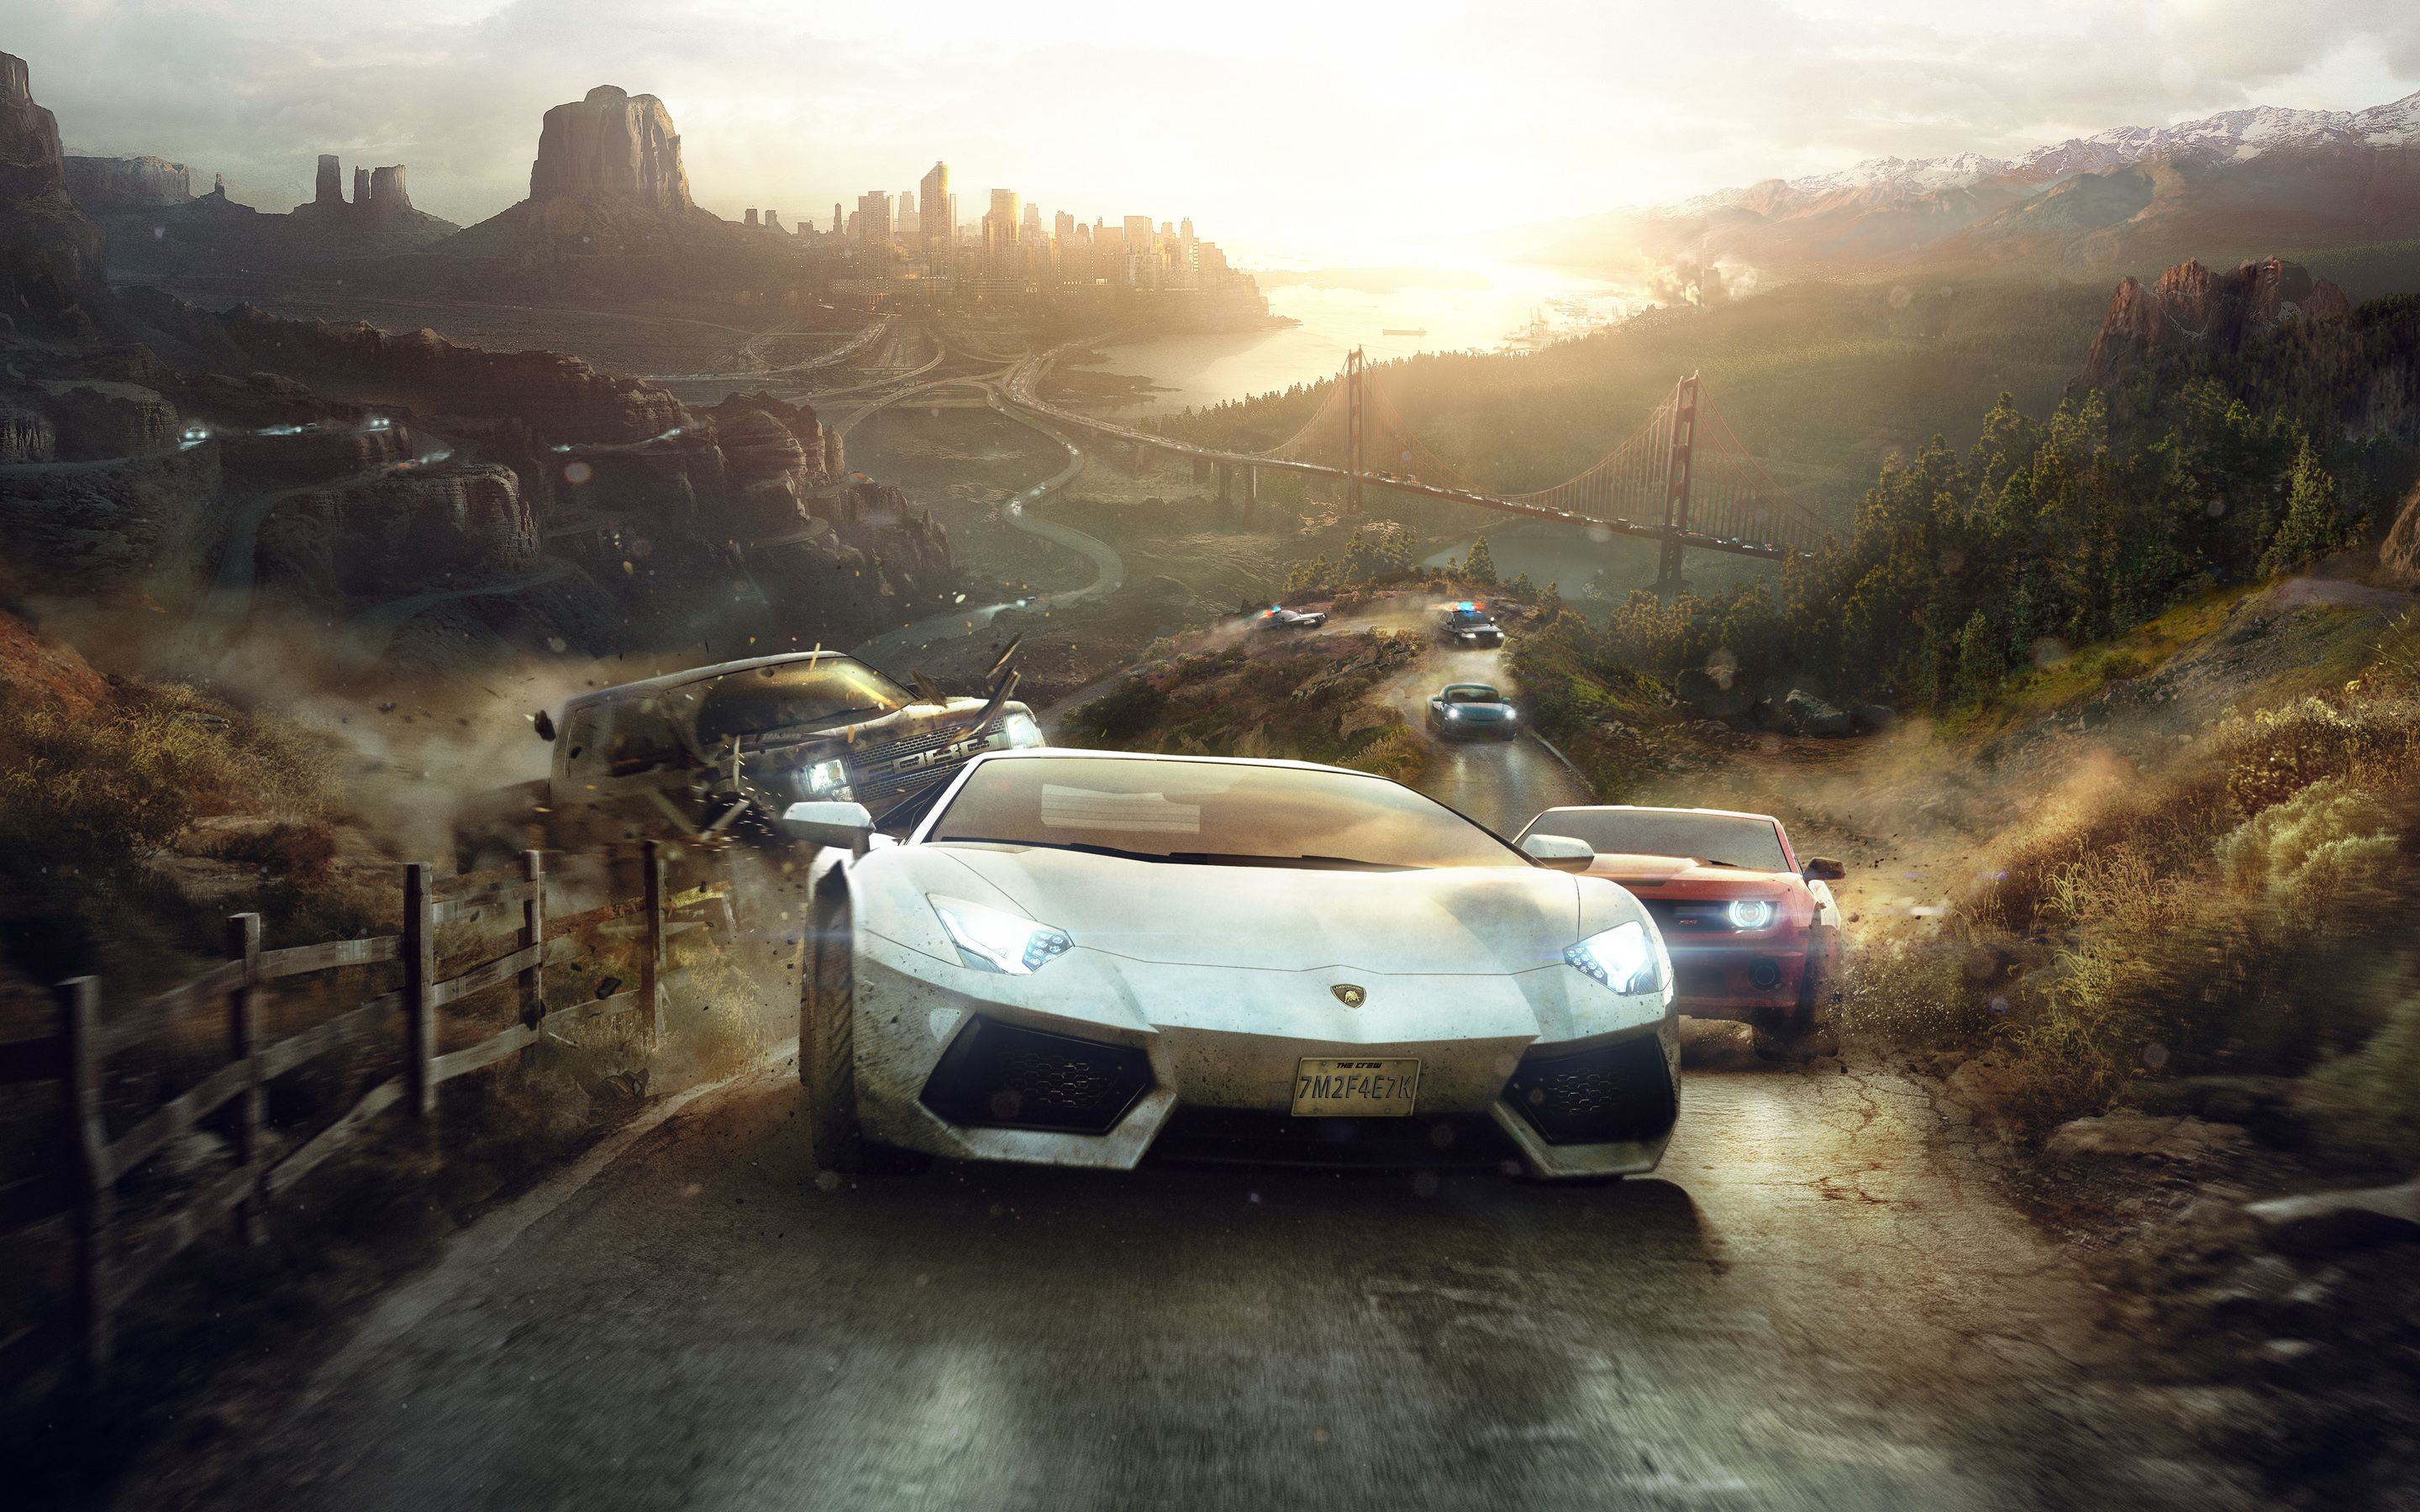 The Crew 2014 Game Wallpapers Hd Wallpapers Super Car Racing Car Wallpapers Gaming Wallpapers Hd